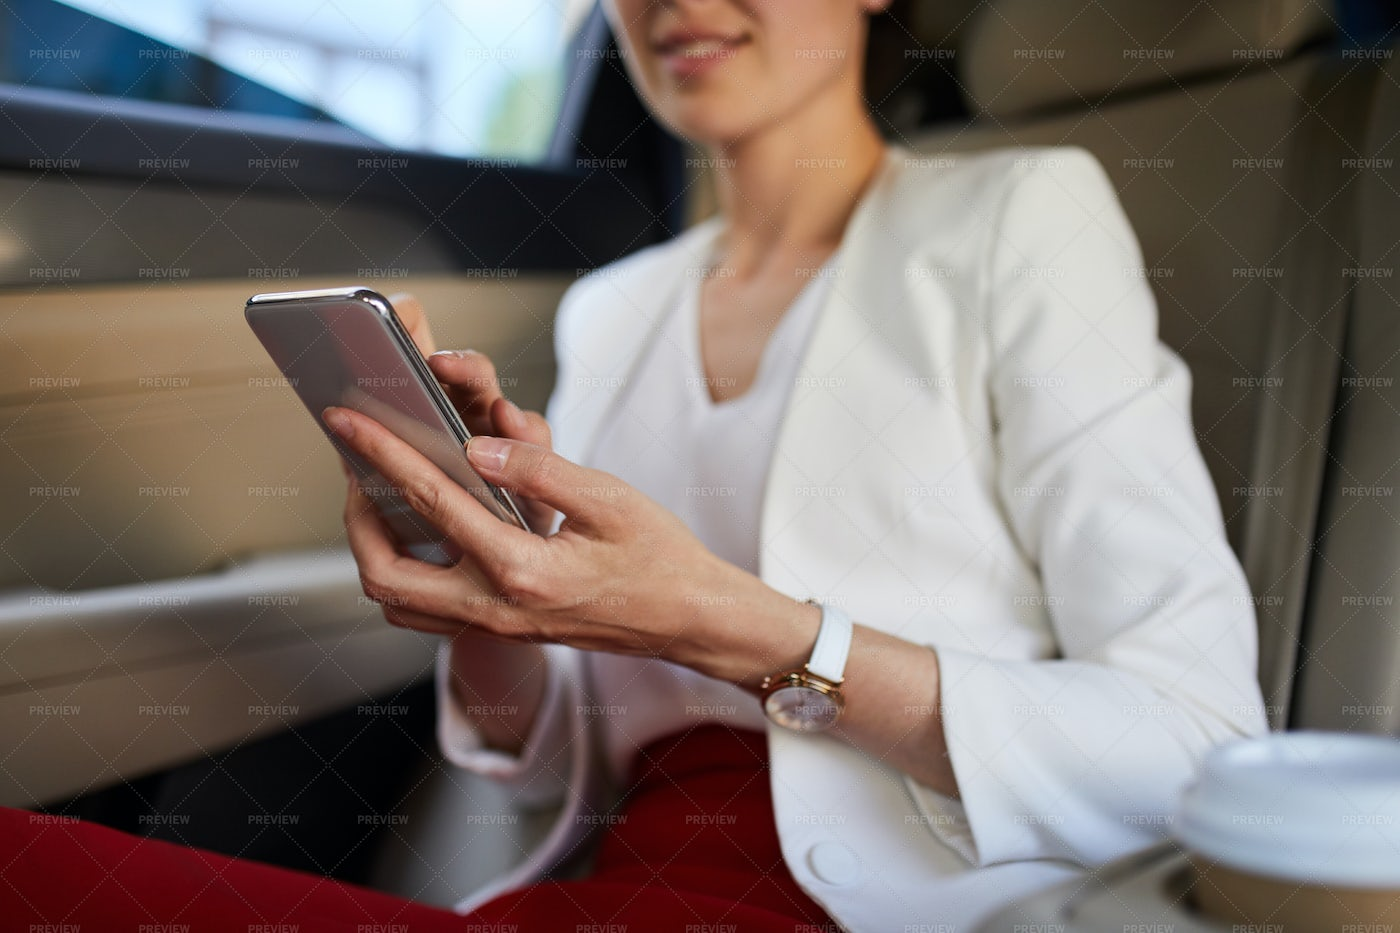 Woman Using Smartphone In Car: Stock Photos